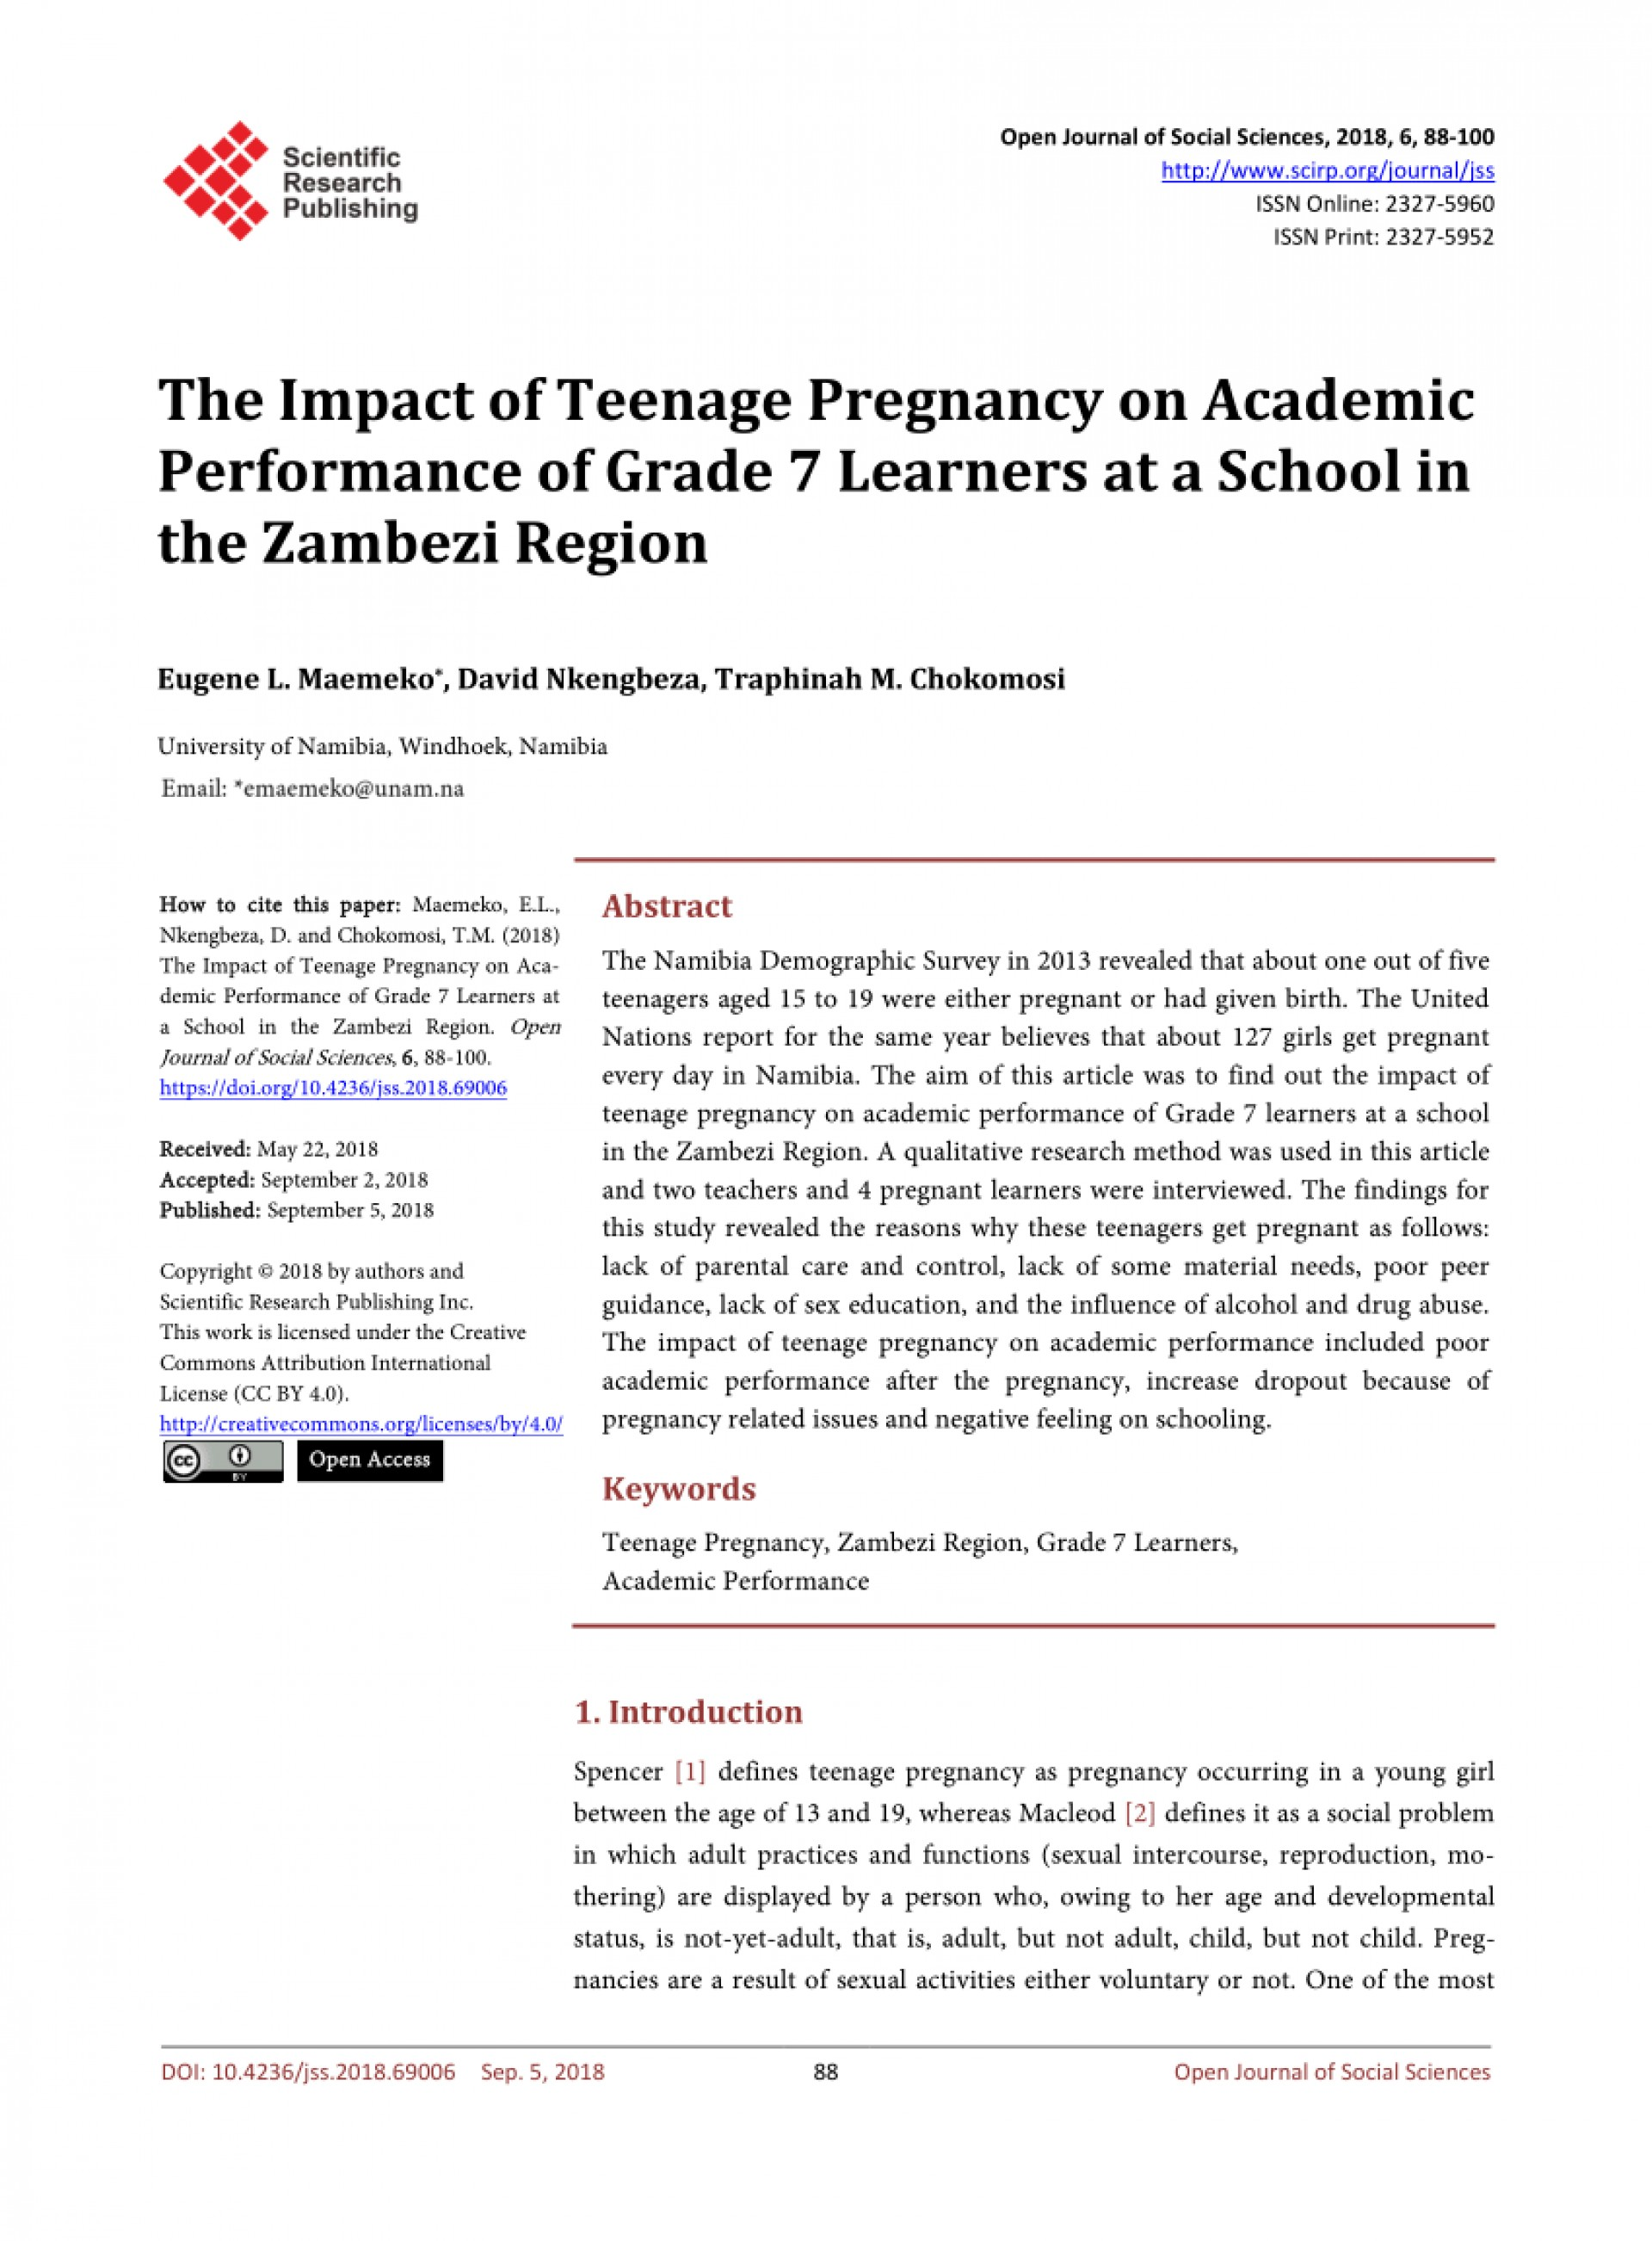 007 Largepreview Research Paper Free Papers On Teenage Top Pregnancy 1920